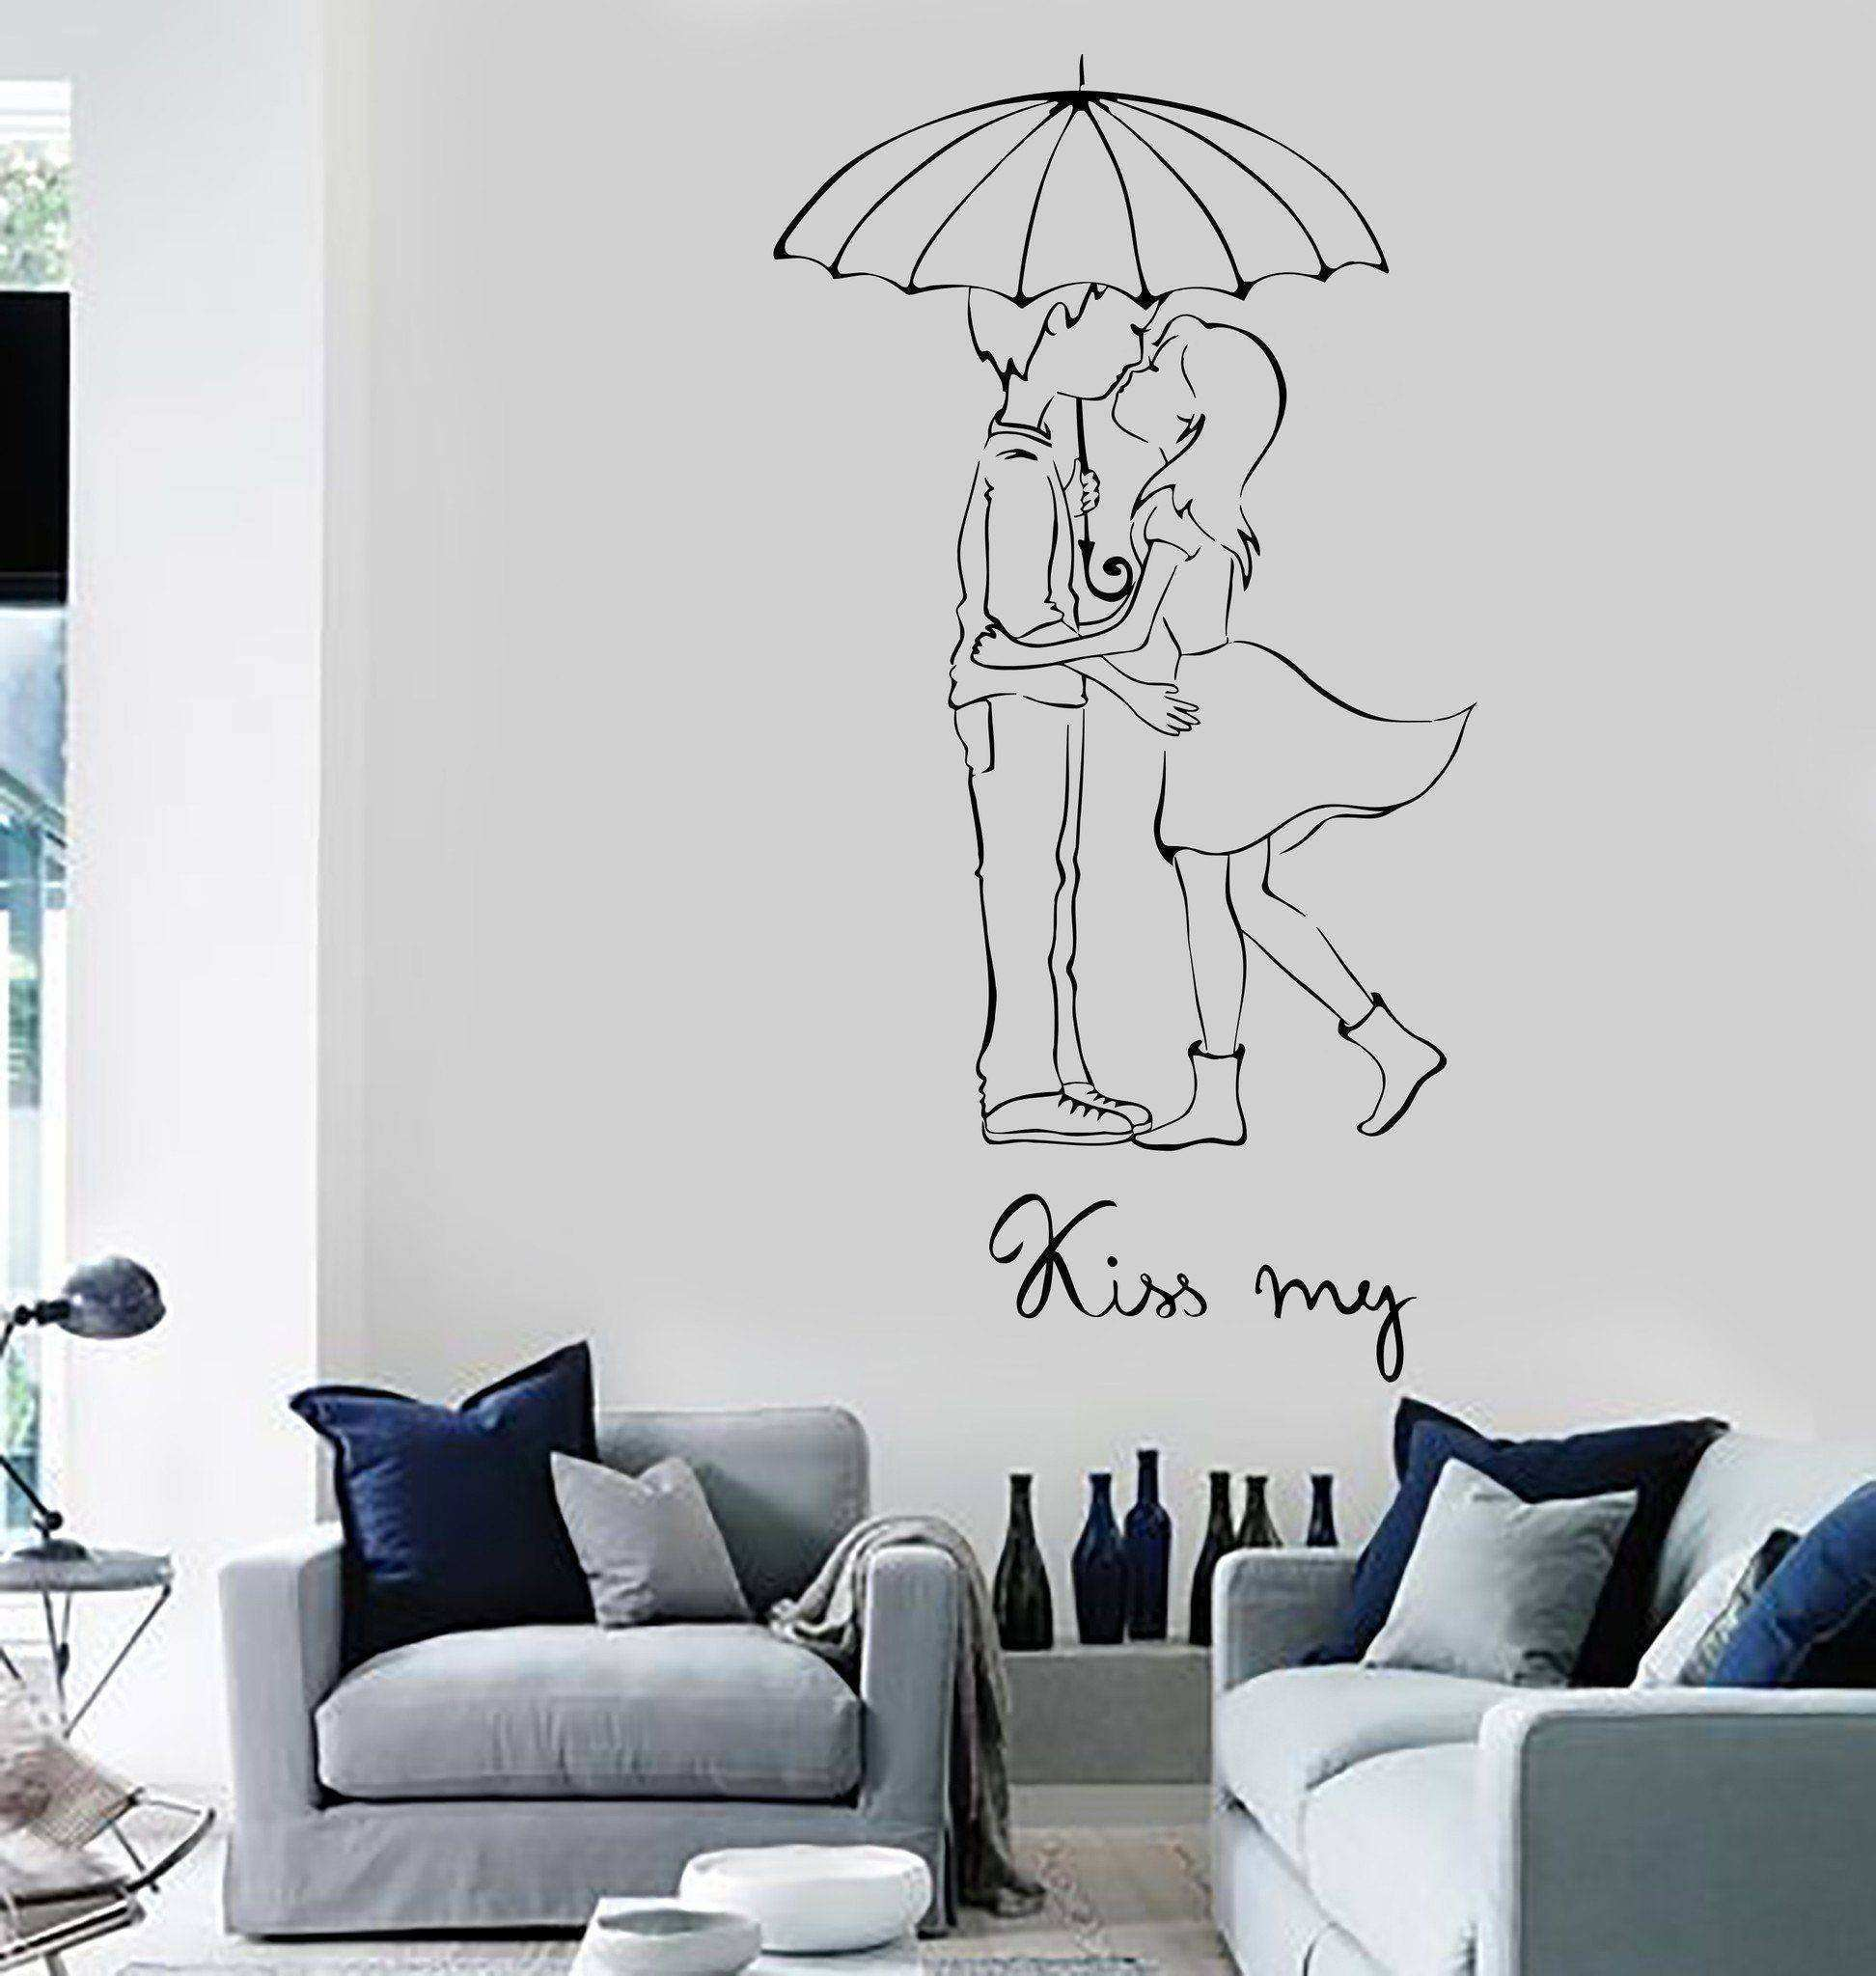 51 Awesome Romantic Bedroom Wall Art